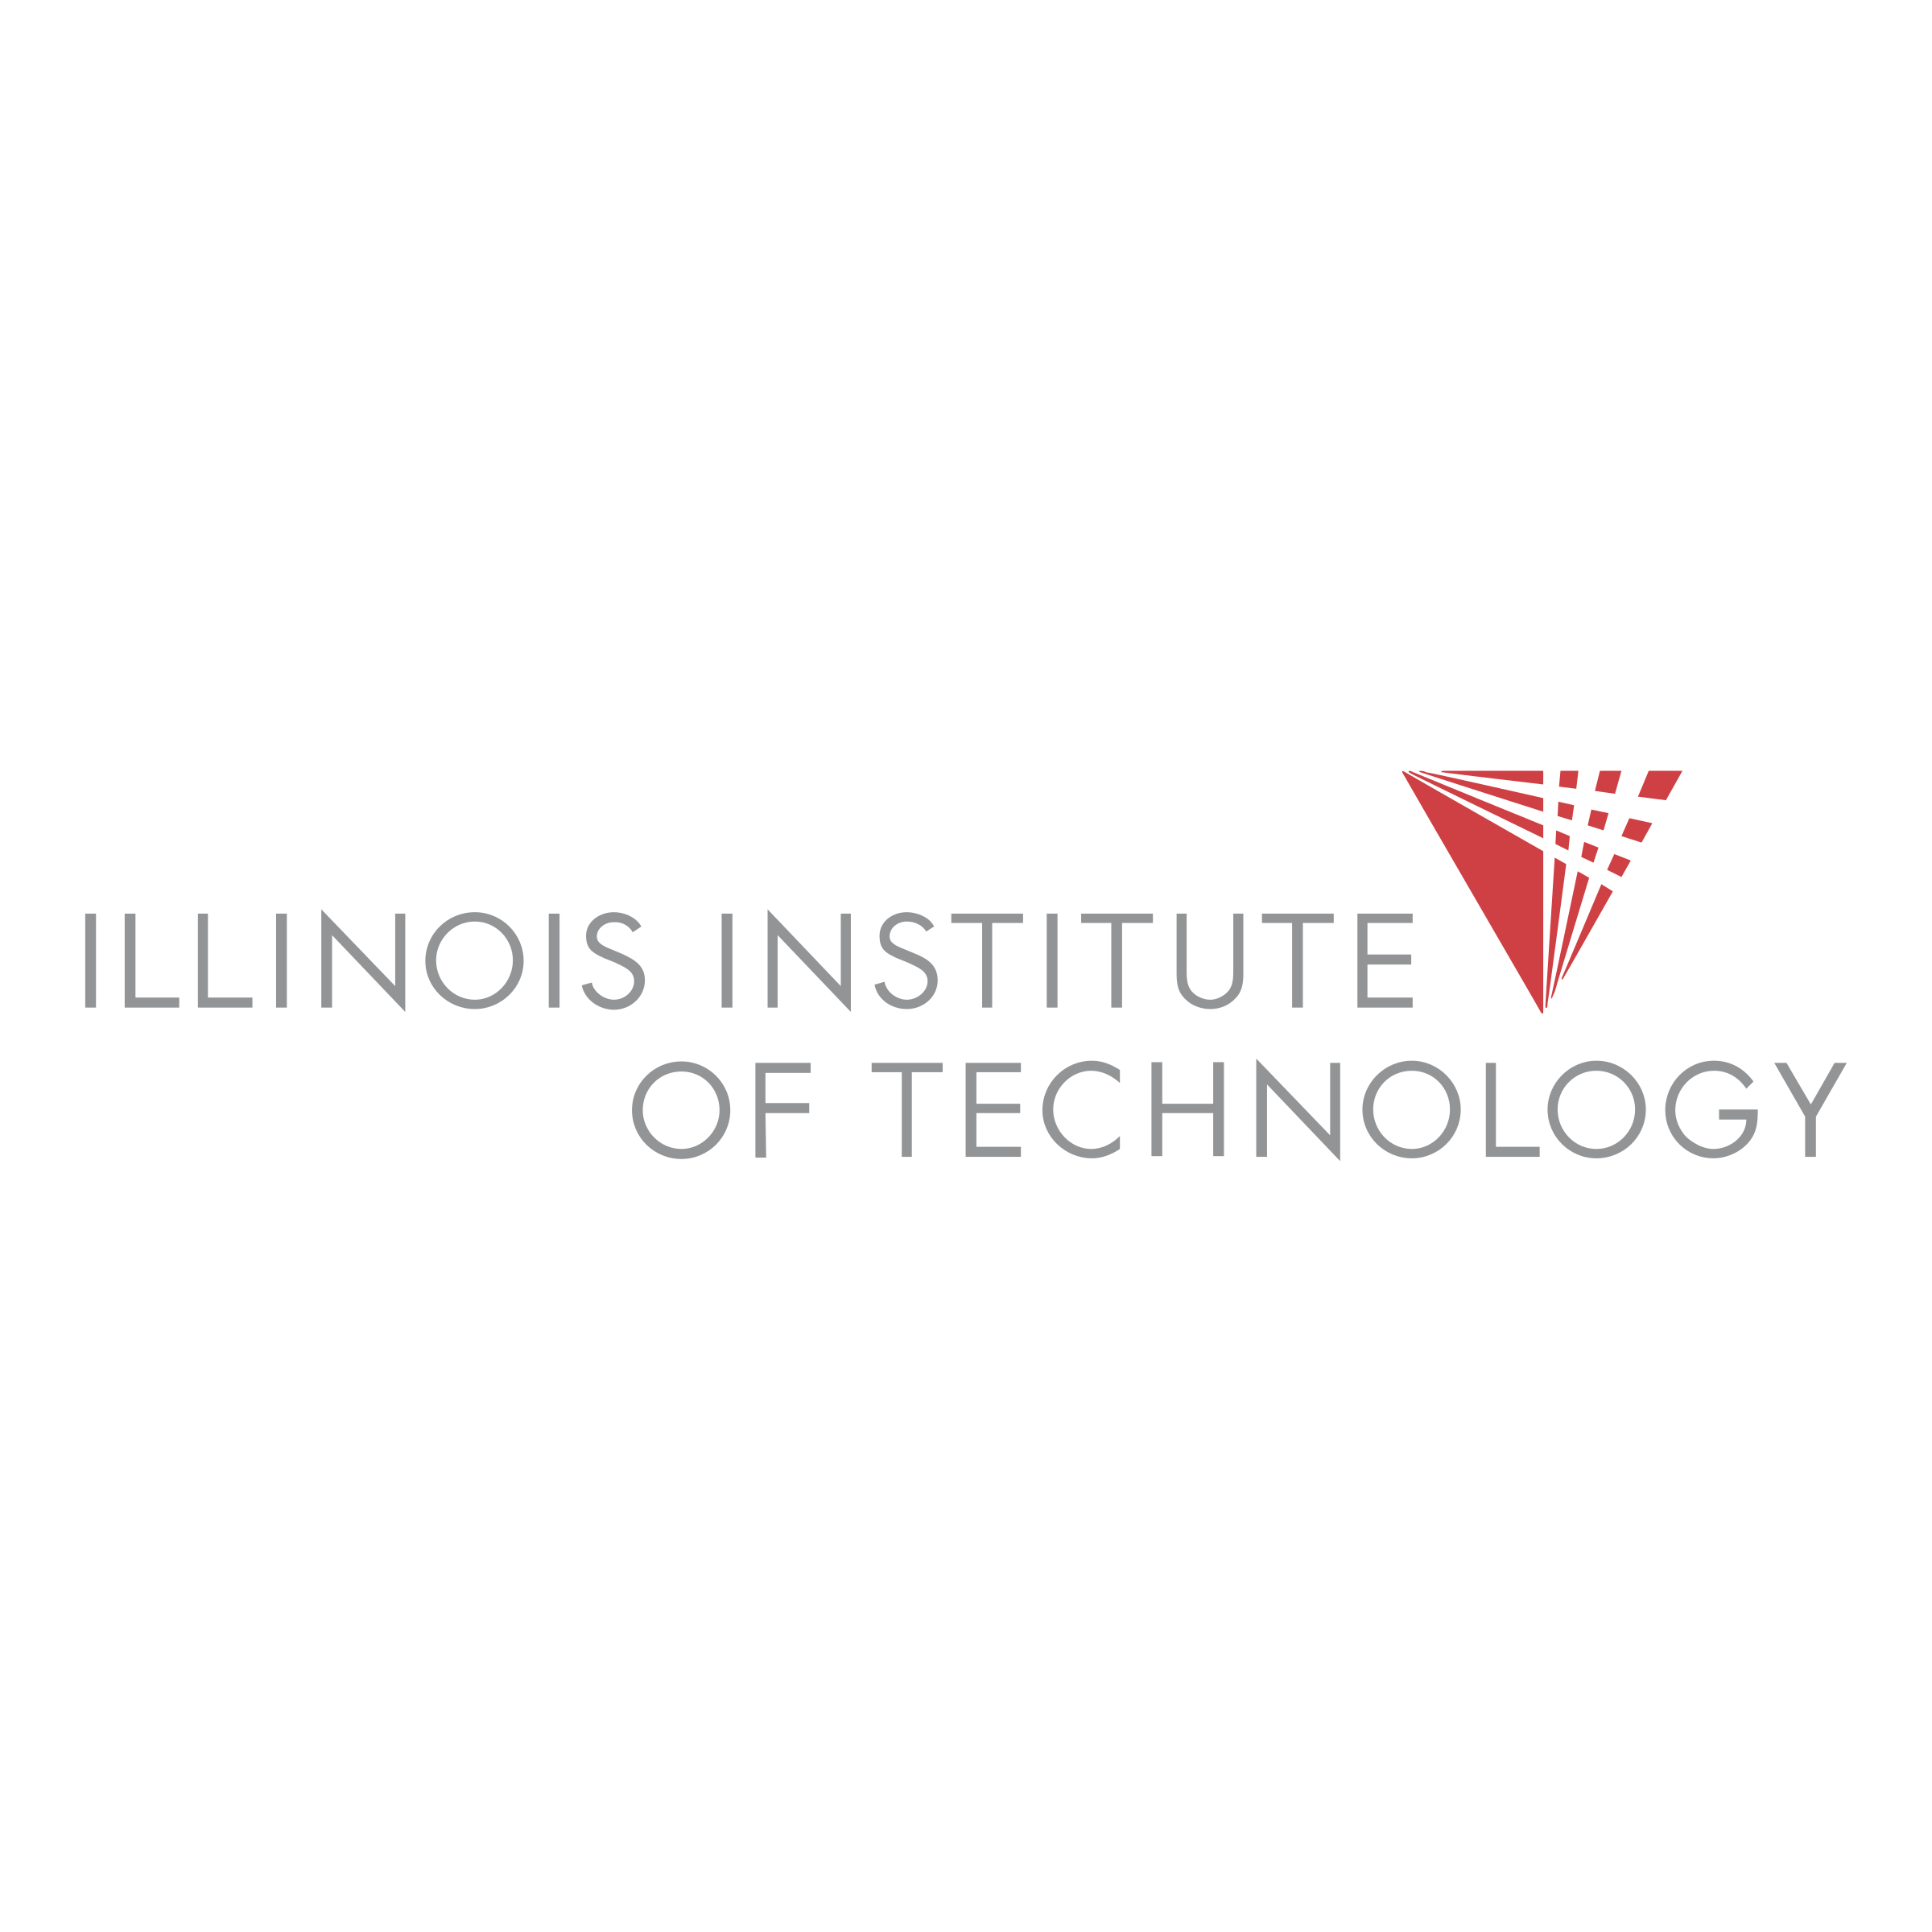 Placements - Illinois Institute of Technology